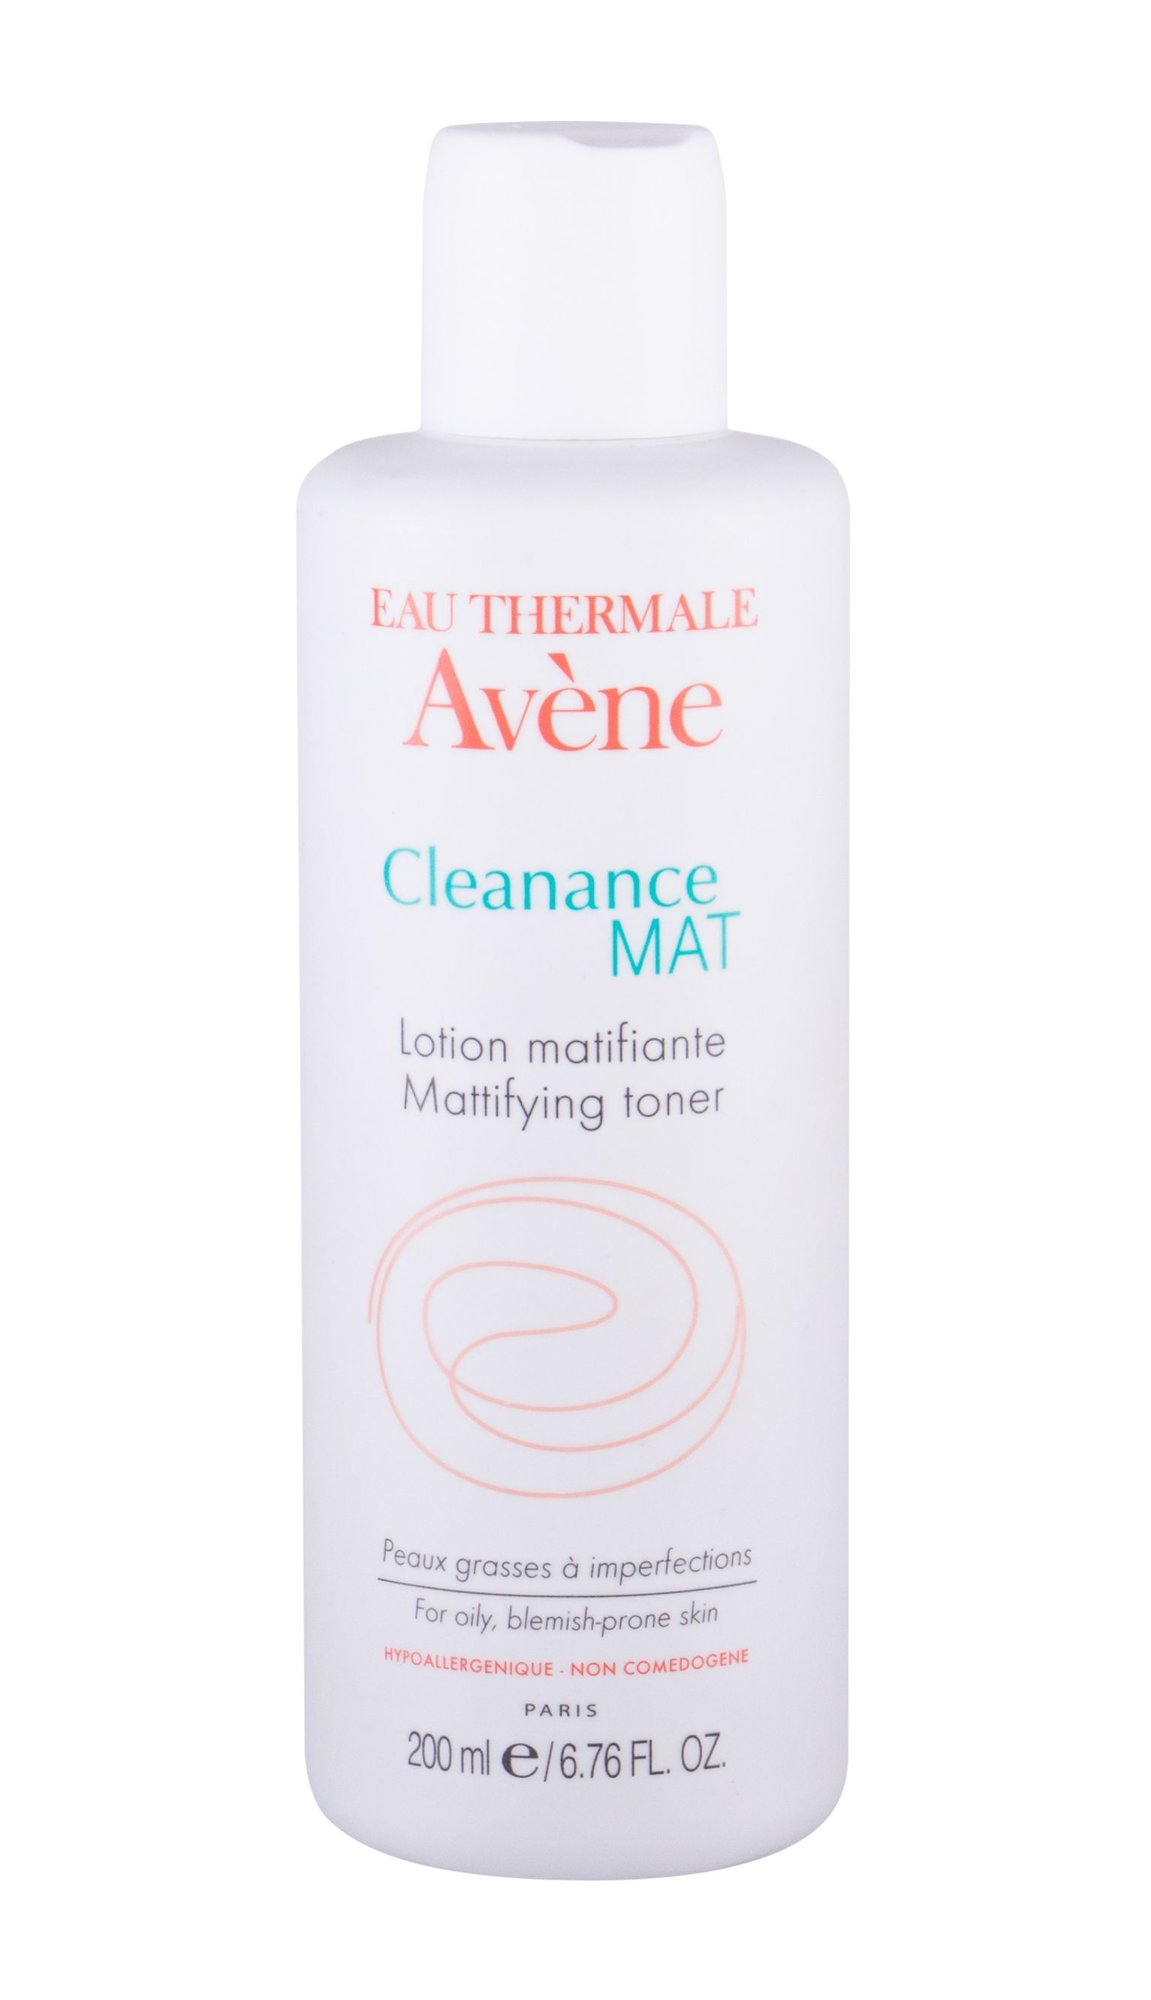 Avene Cleanance  Podklad pod makeup, W, 200 ml